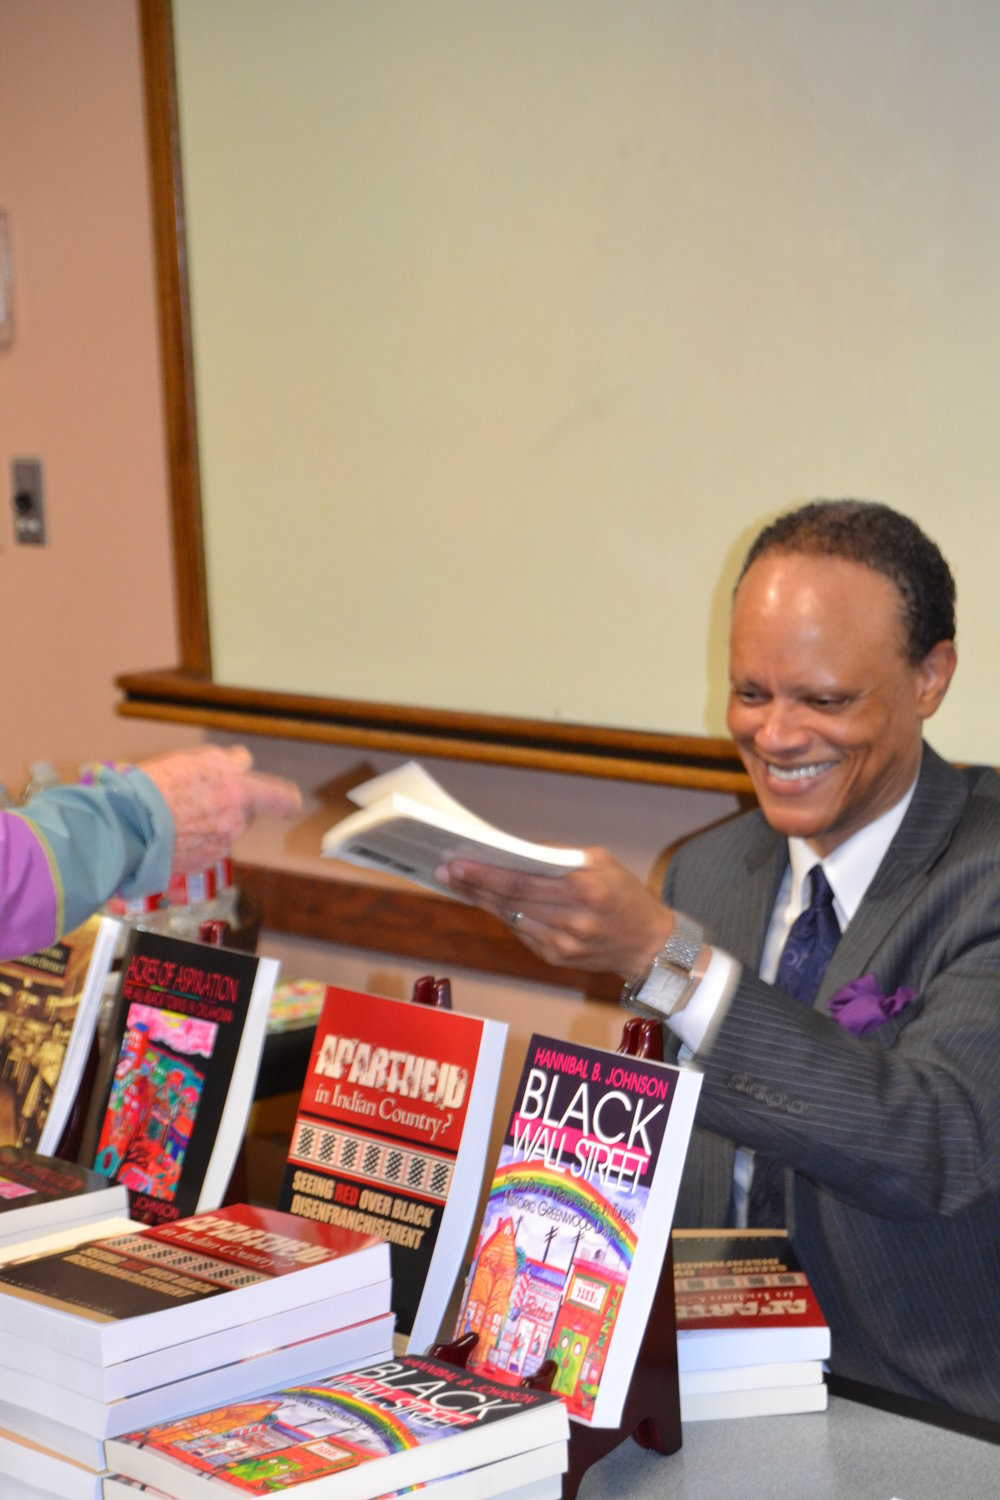 Bartlesville Book Signing, April 2014  Courtesy of Hannibal Johnson